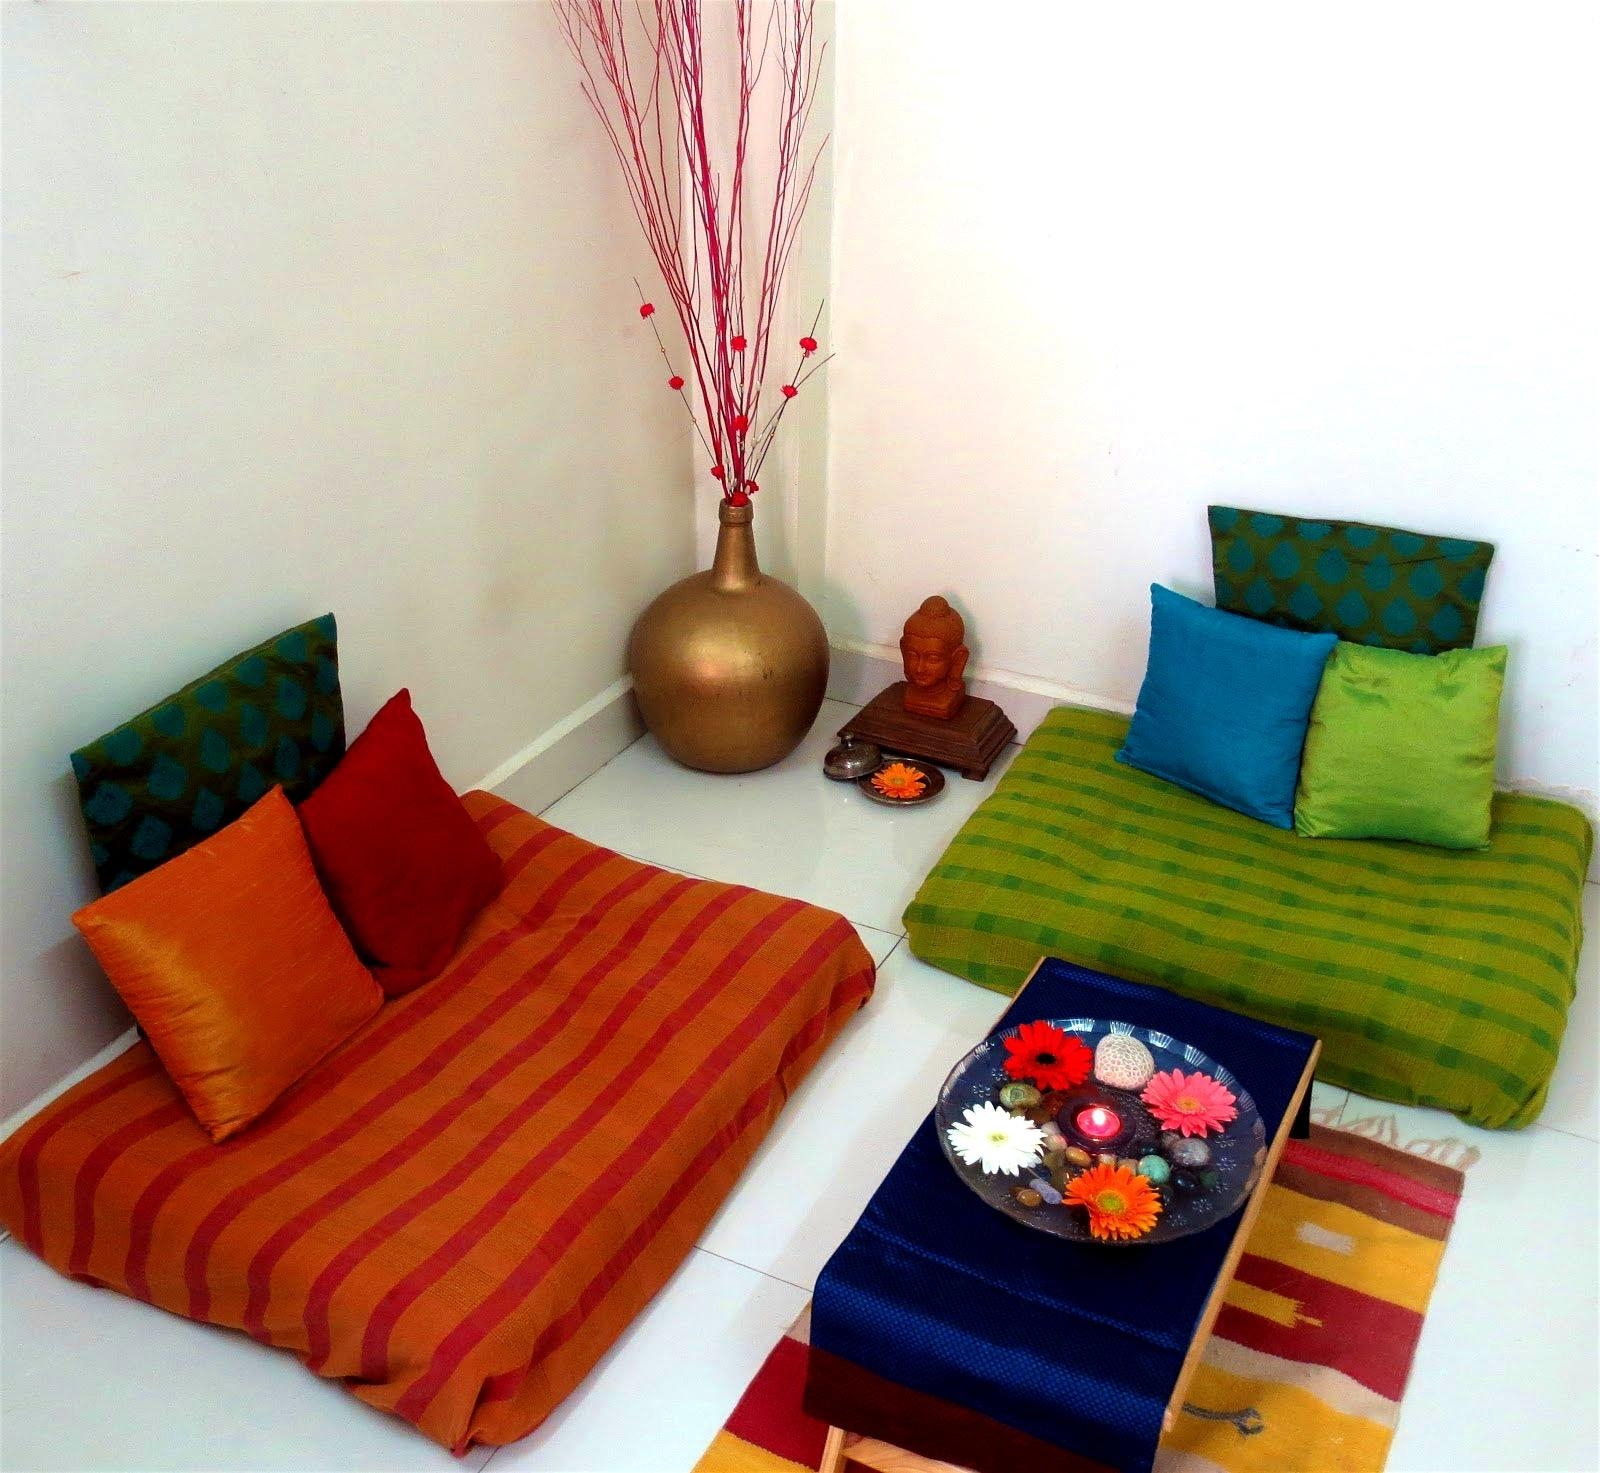 One Seat Cushion Sofas | Cushions Decoration In Floor Cushion Sofas (Image 17 of 20)